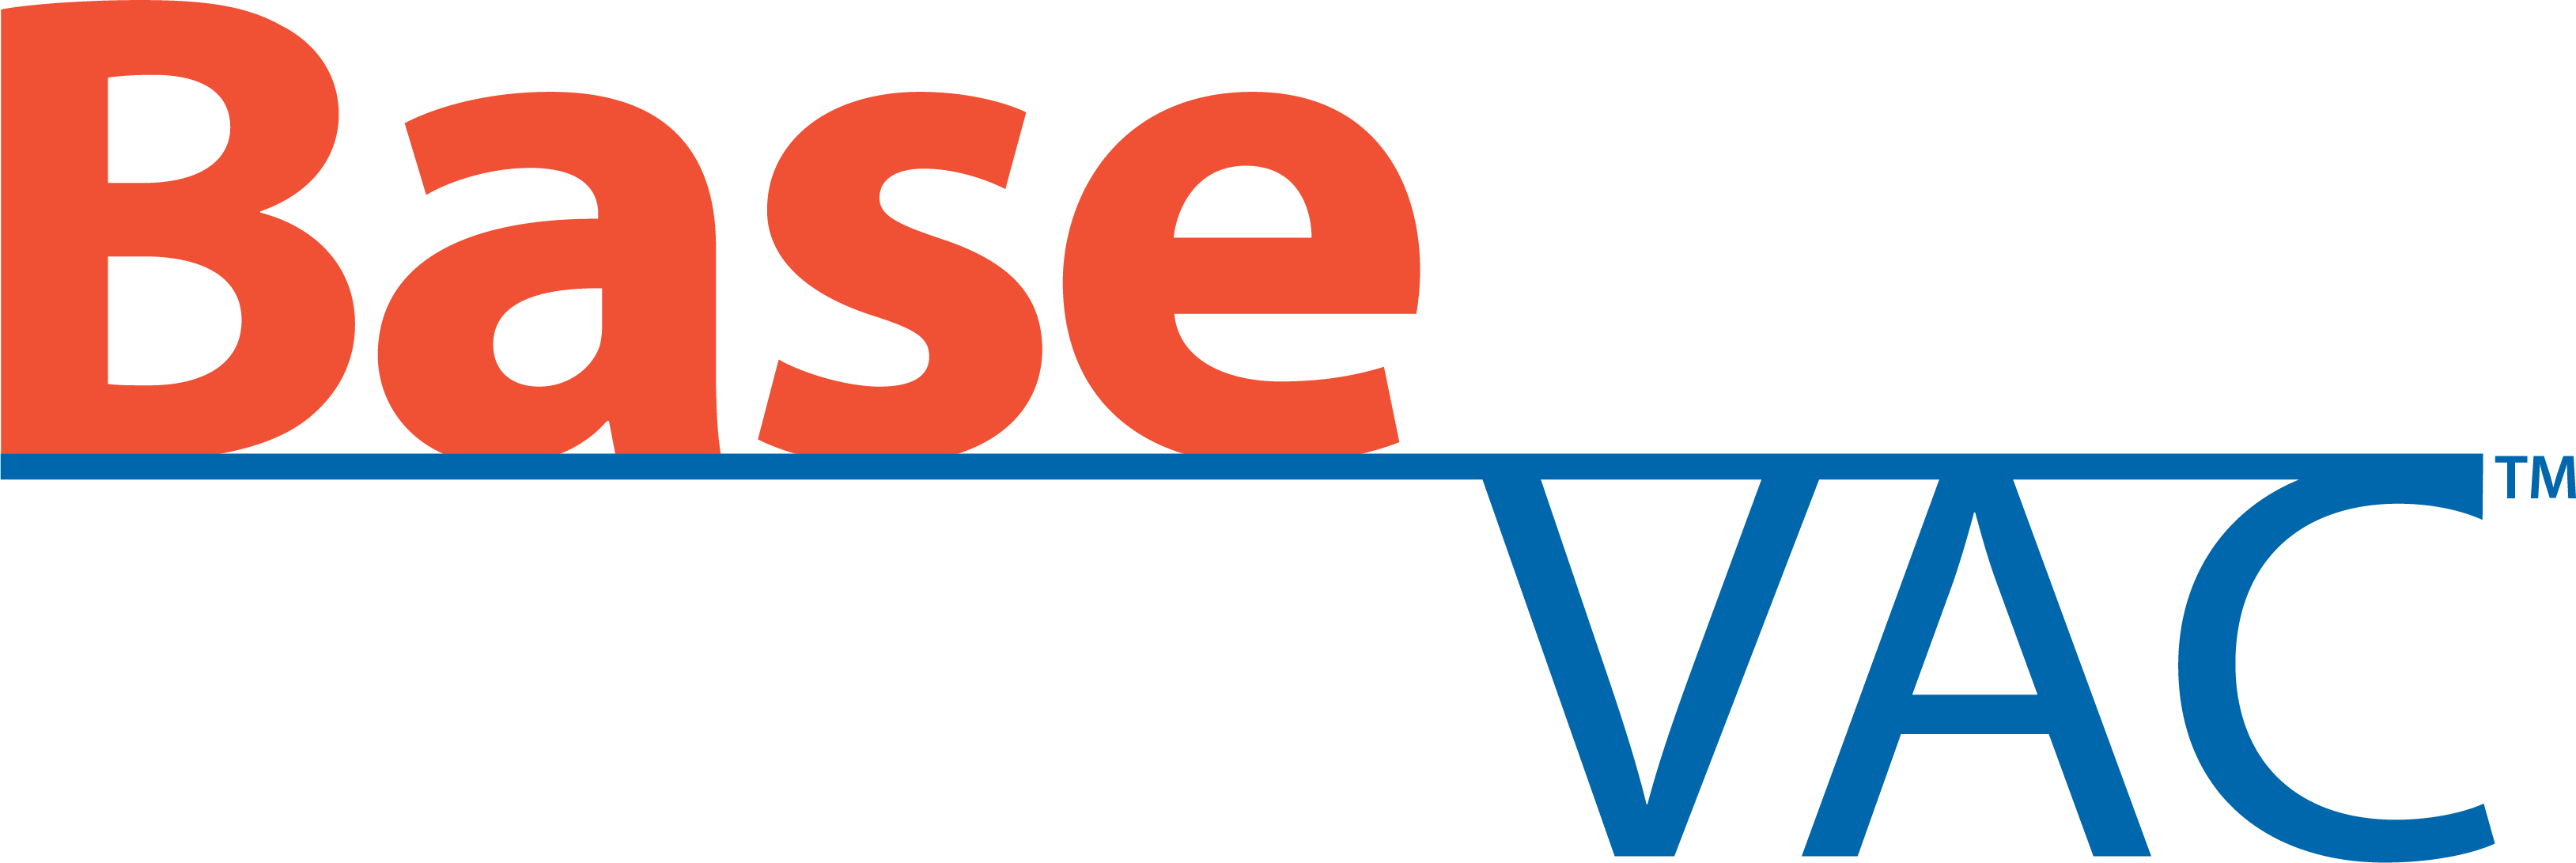 A logo for BaseVac Dental